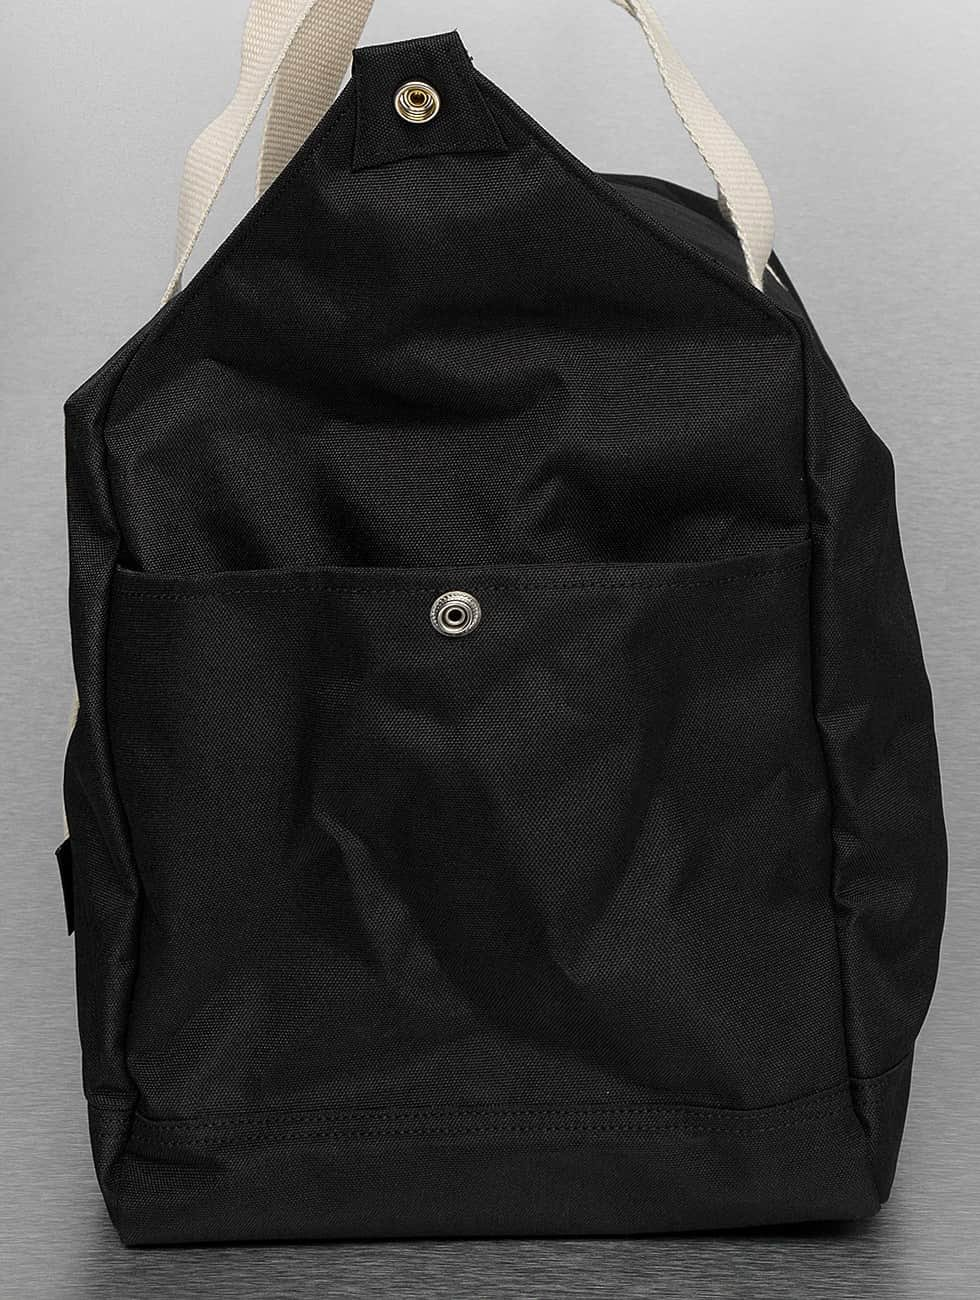 Carhartt WIP Bag Watch Sport black